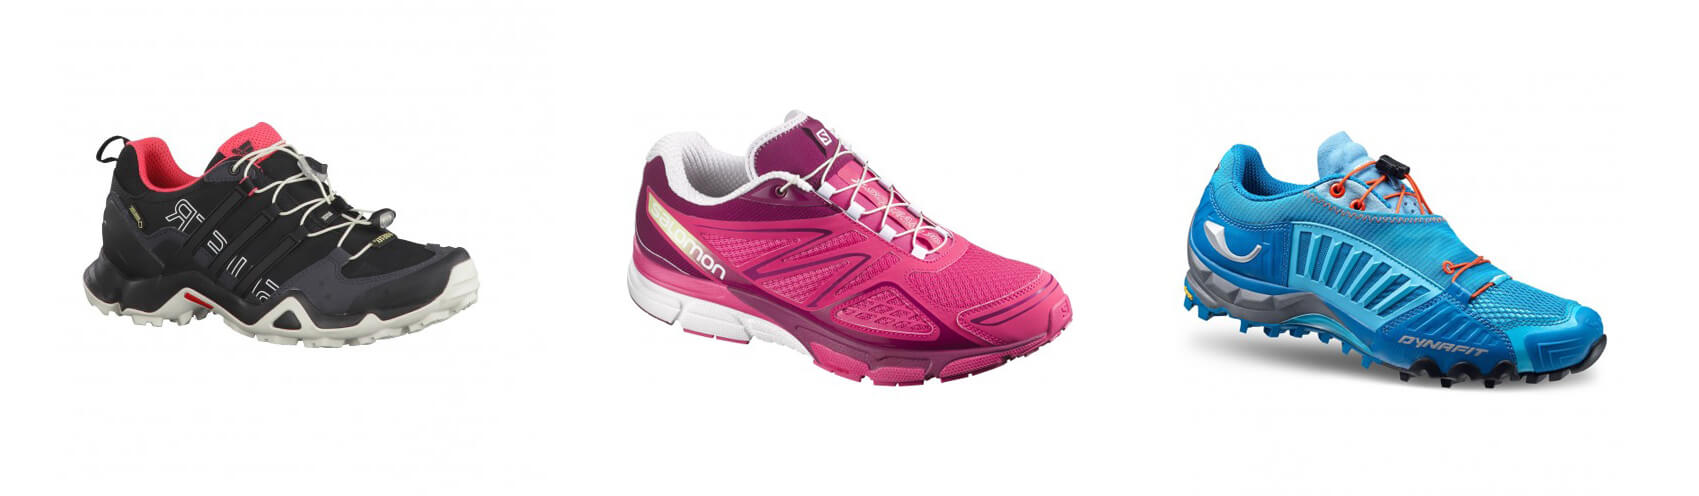 Chaussures trail femme